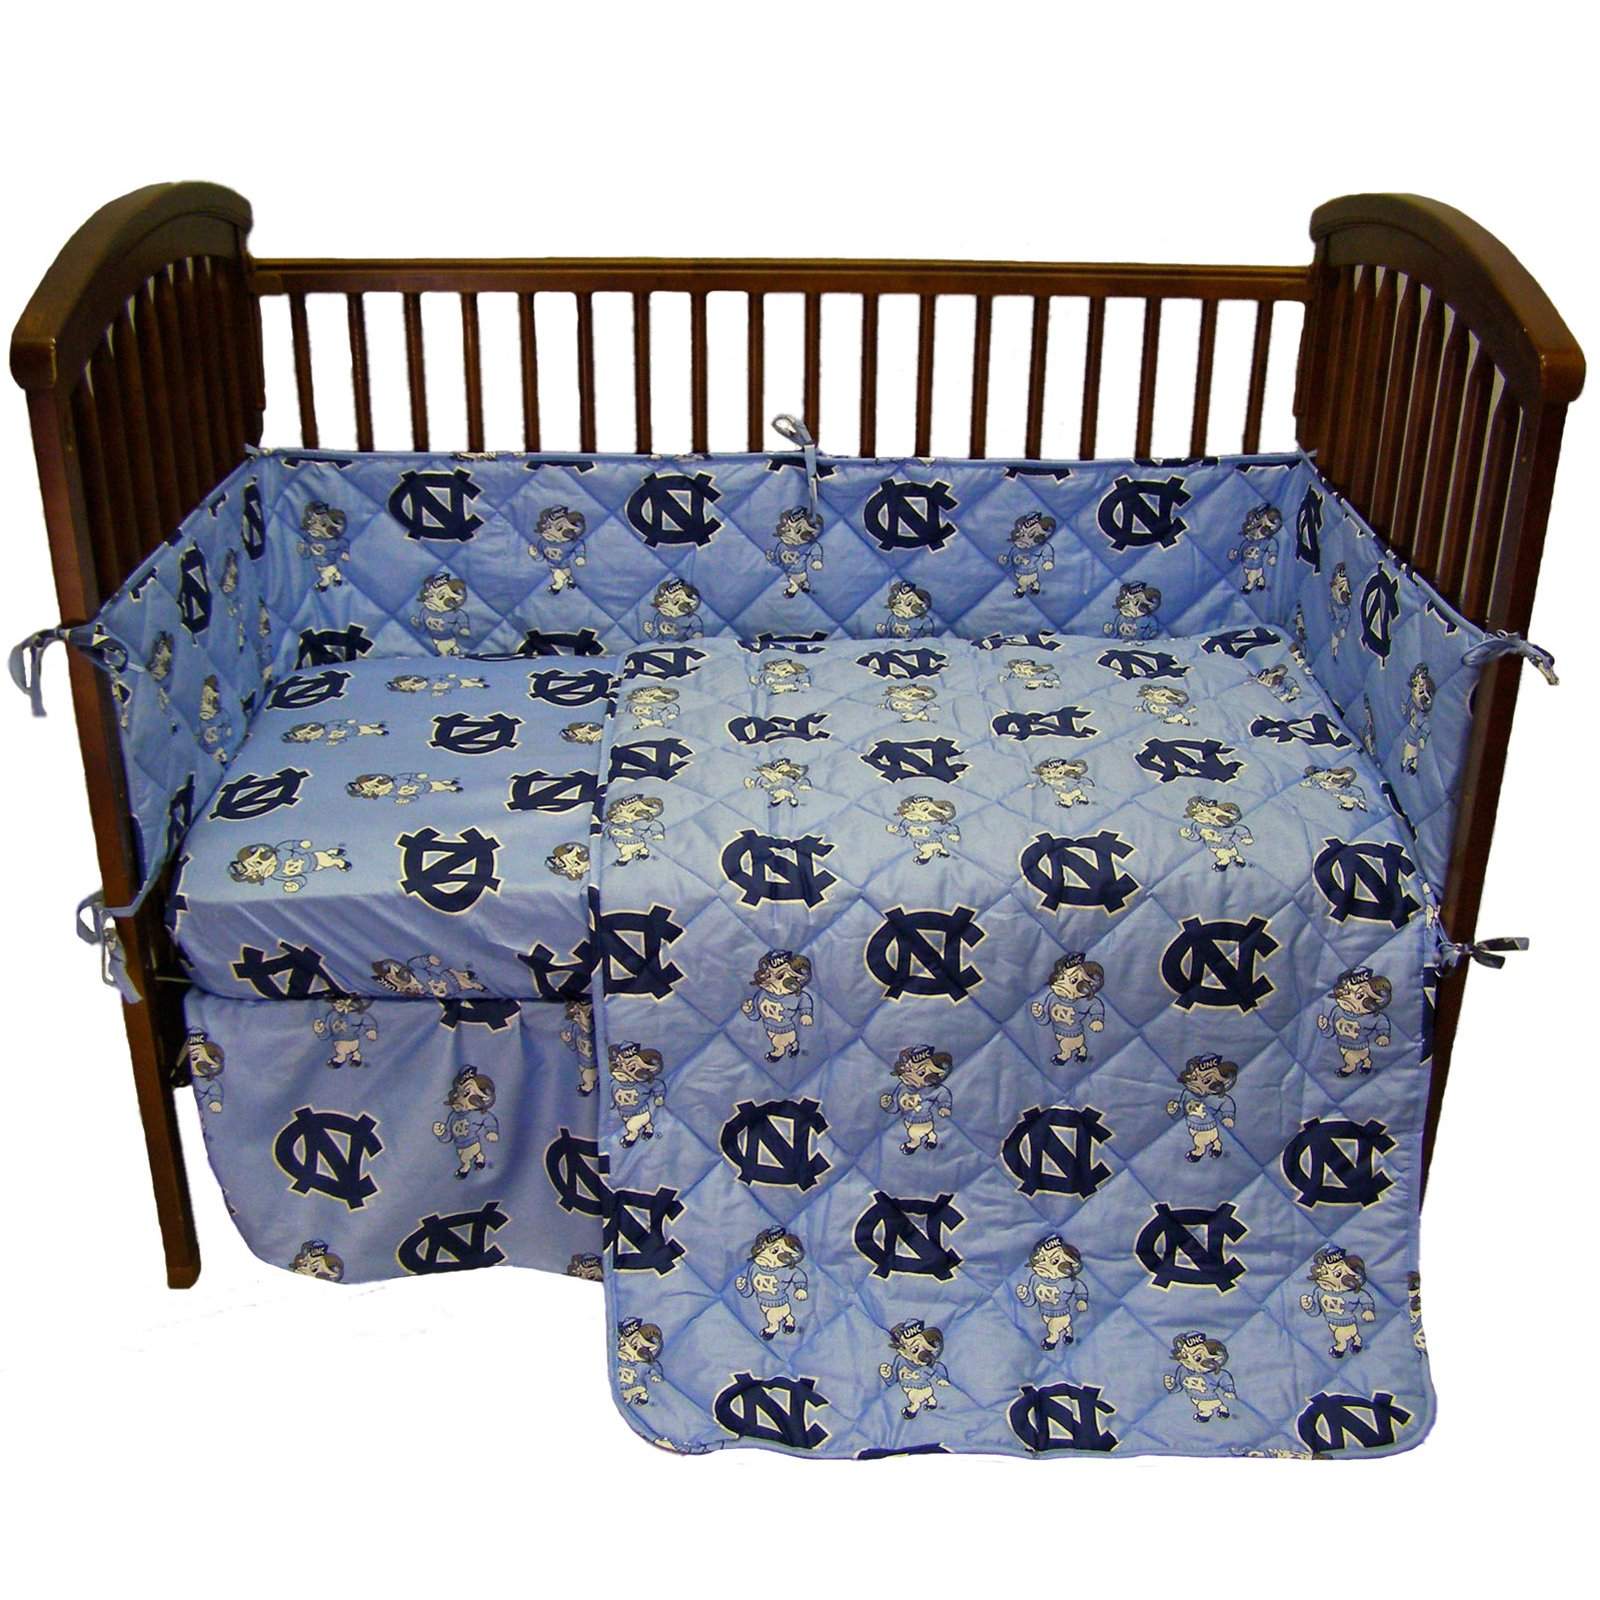 College Covers International North Carolina Tar Heels 5 Piece Baby Crib Set by College Covers